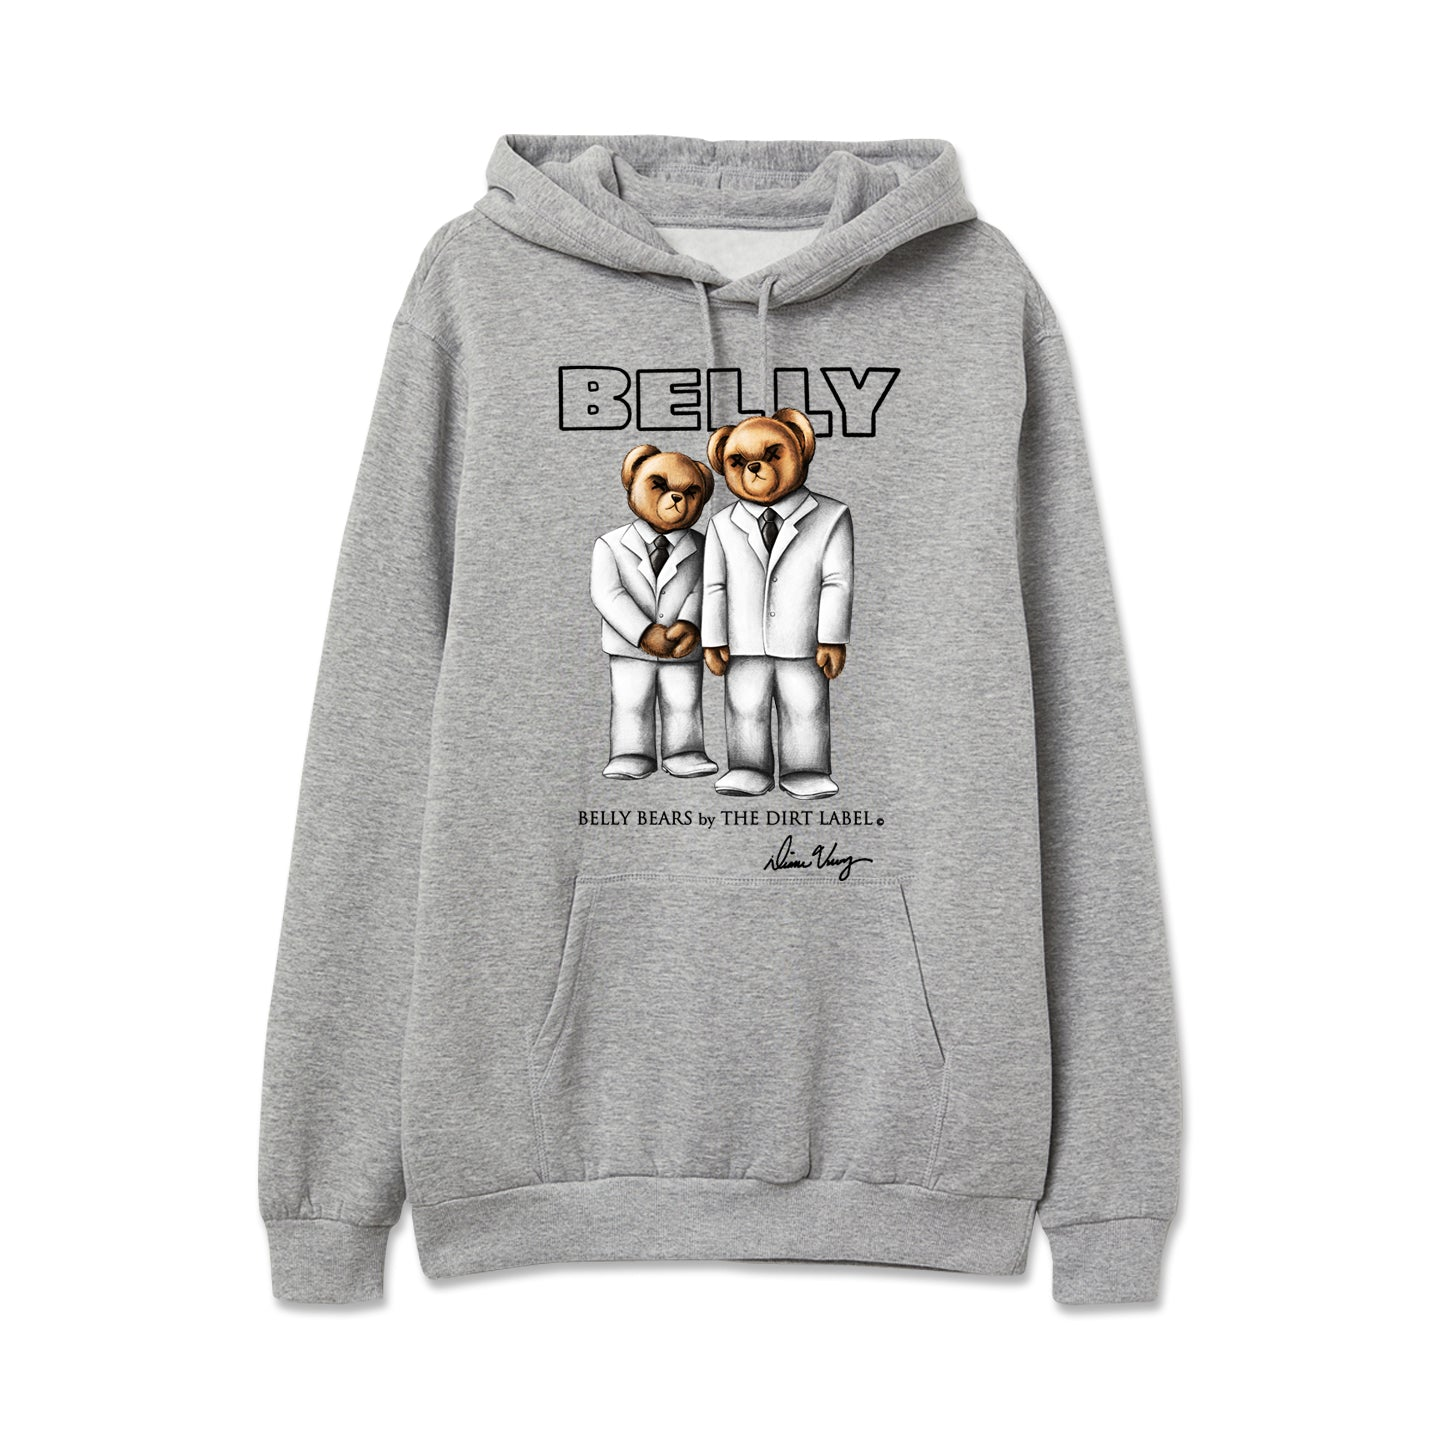 Belly Bears Hoodie (Grey - Limited Edition)